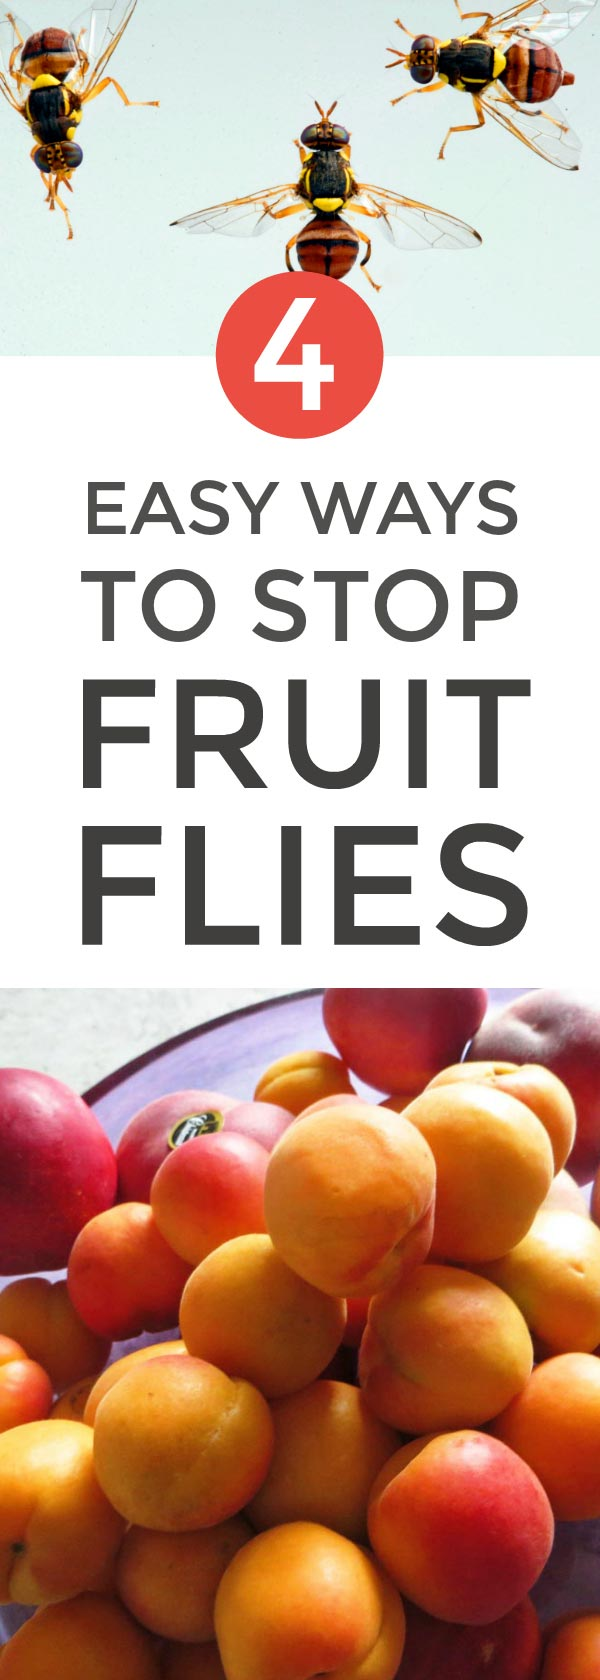 Stop fruit flies getting in with these 4 clever natural hacks #naturalhacks #lifehacks #pests #natural #naturalremedies #greancleaning #naturalcleaning #toxicfree #greenliving